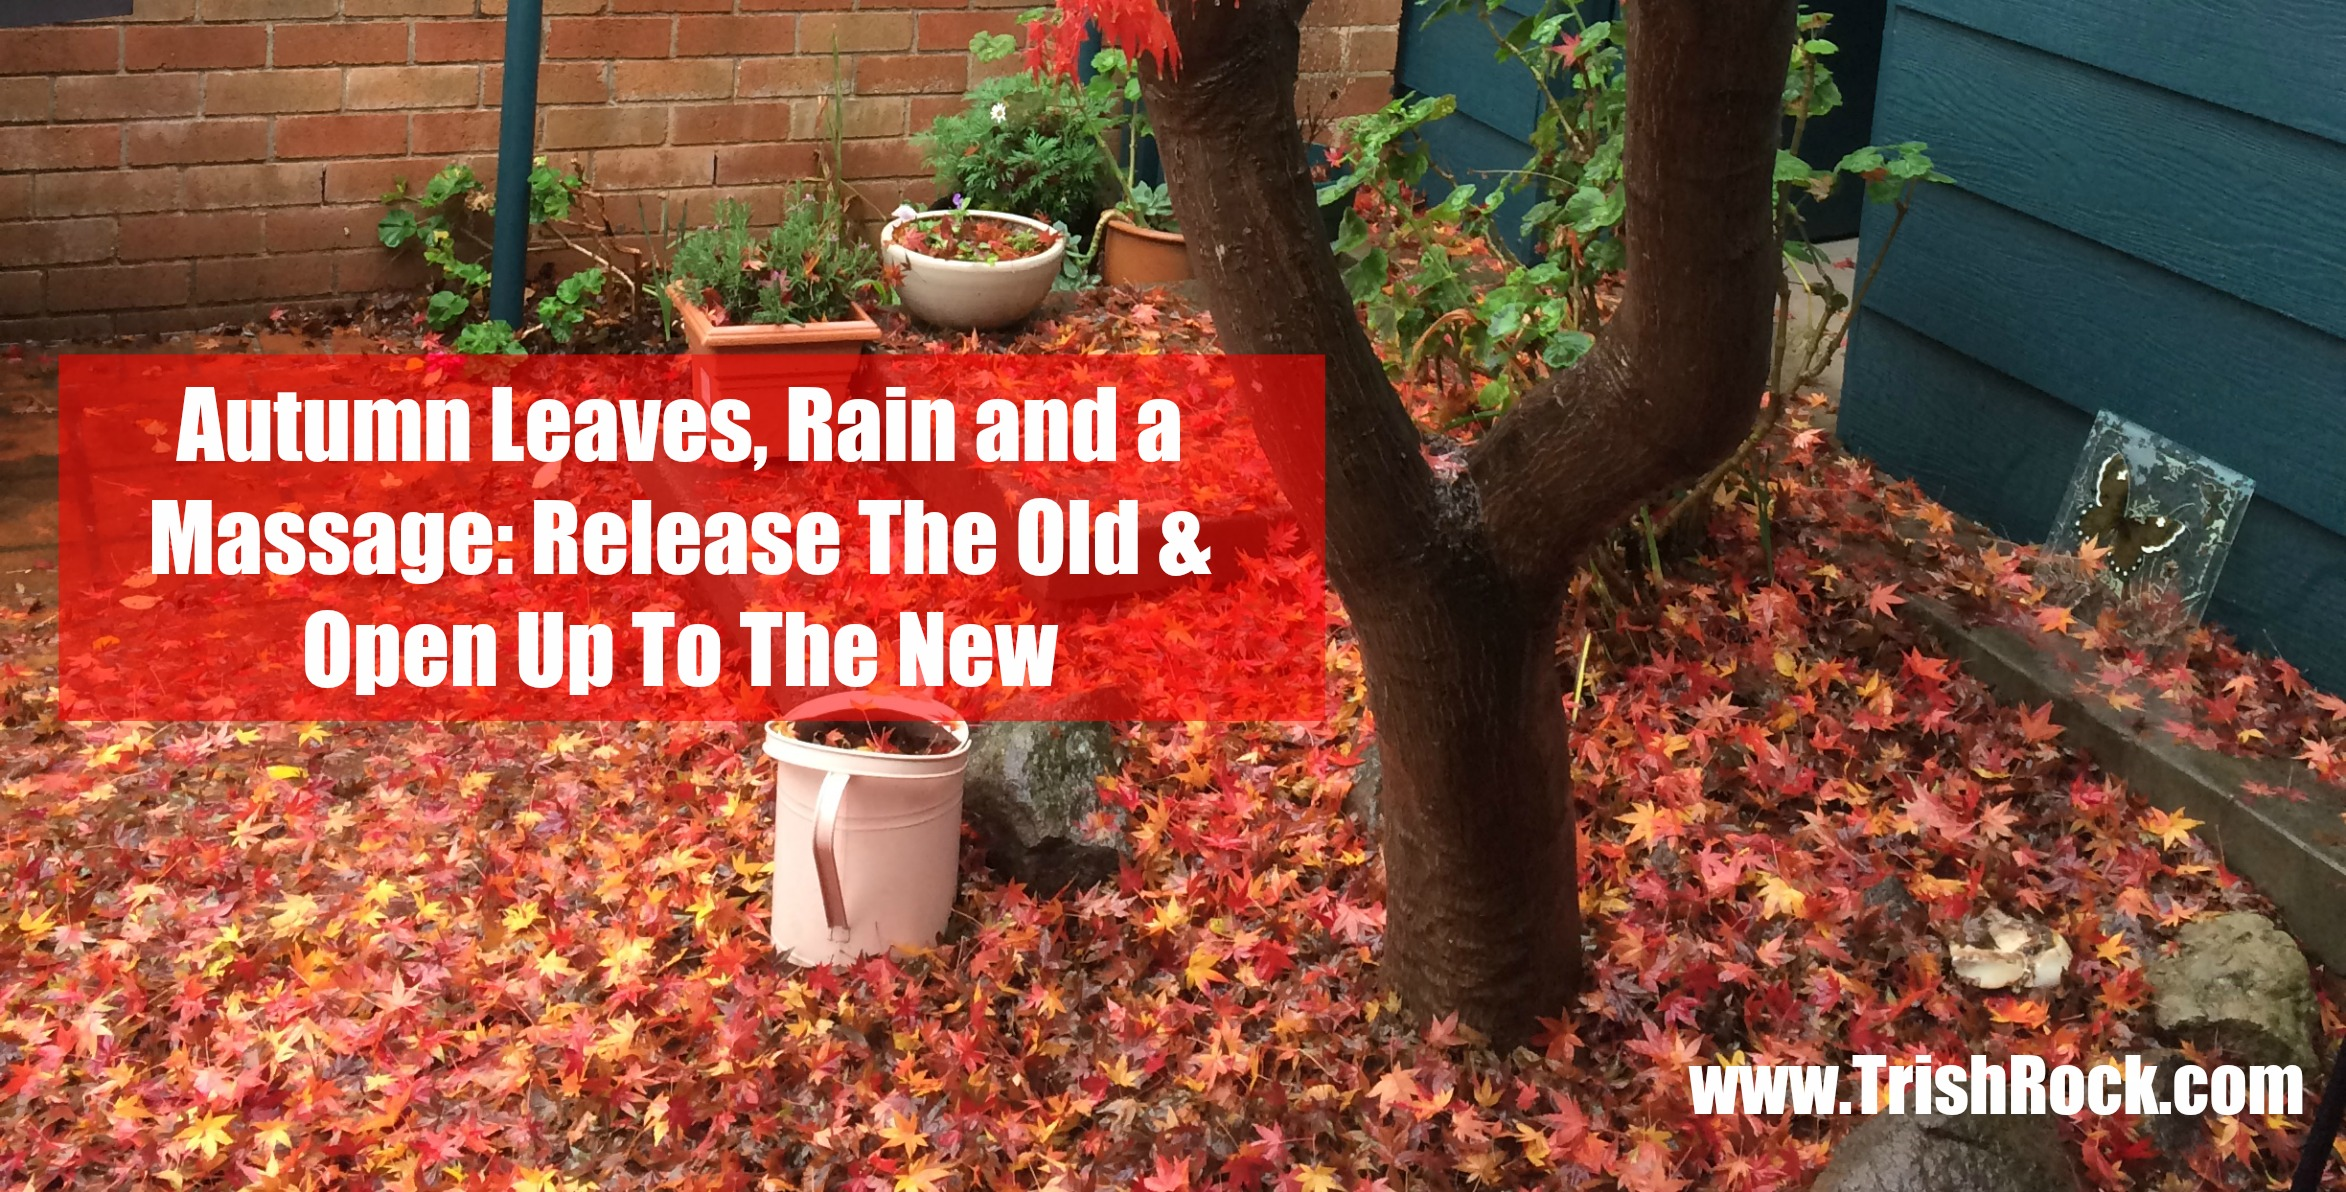 Autumn Leaves, Rain and a Massage…